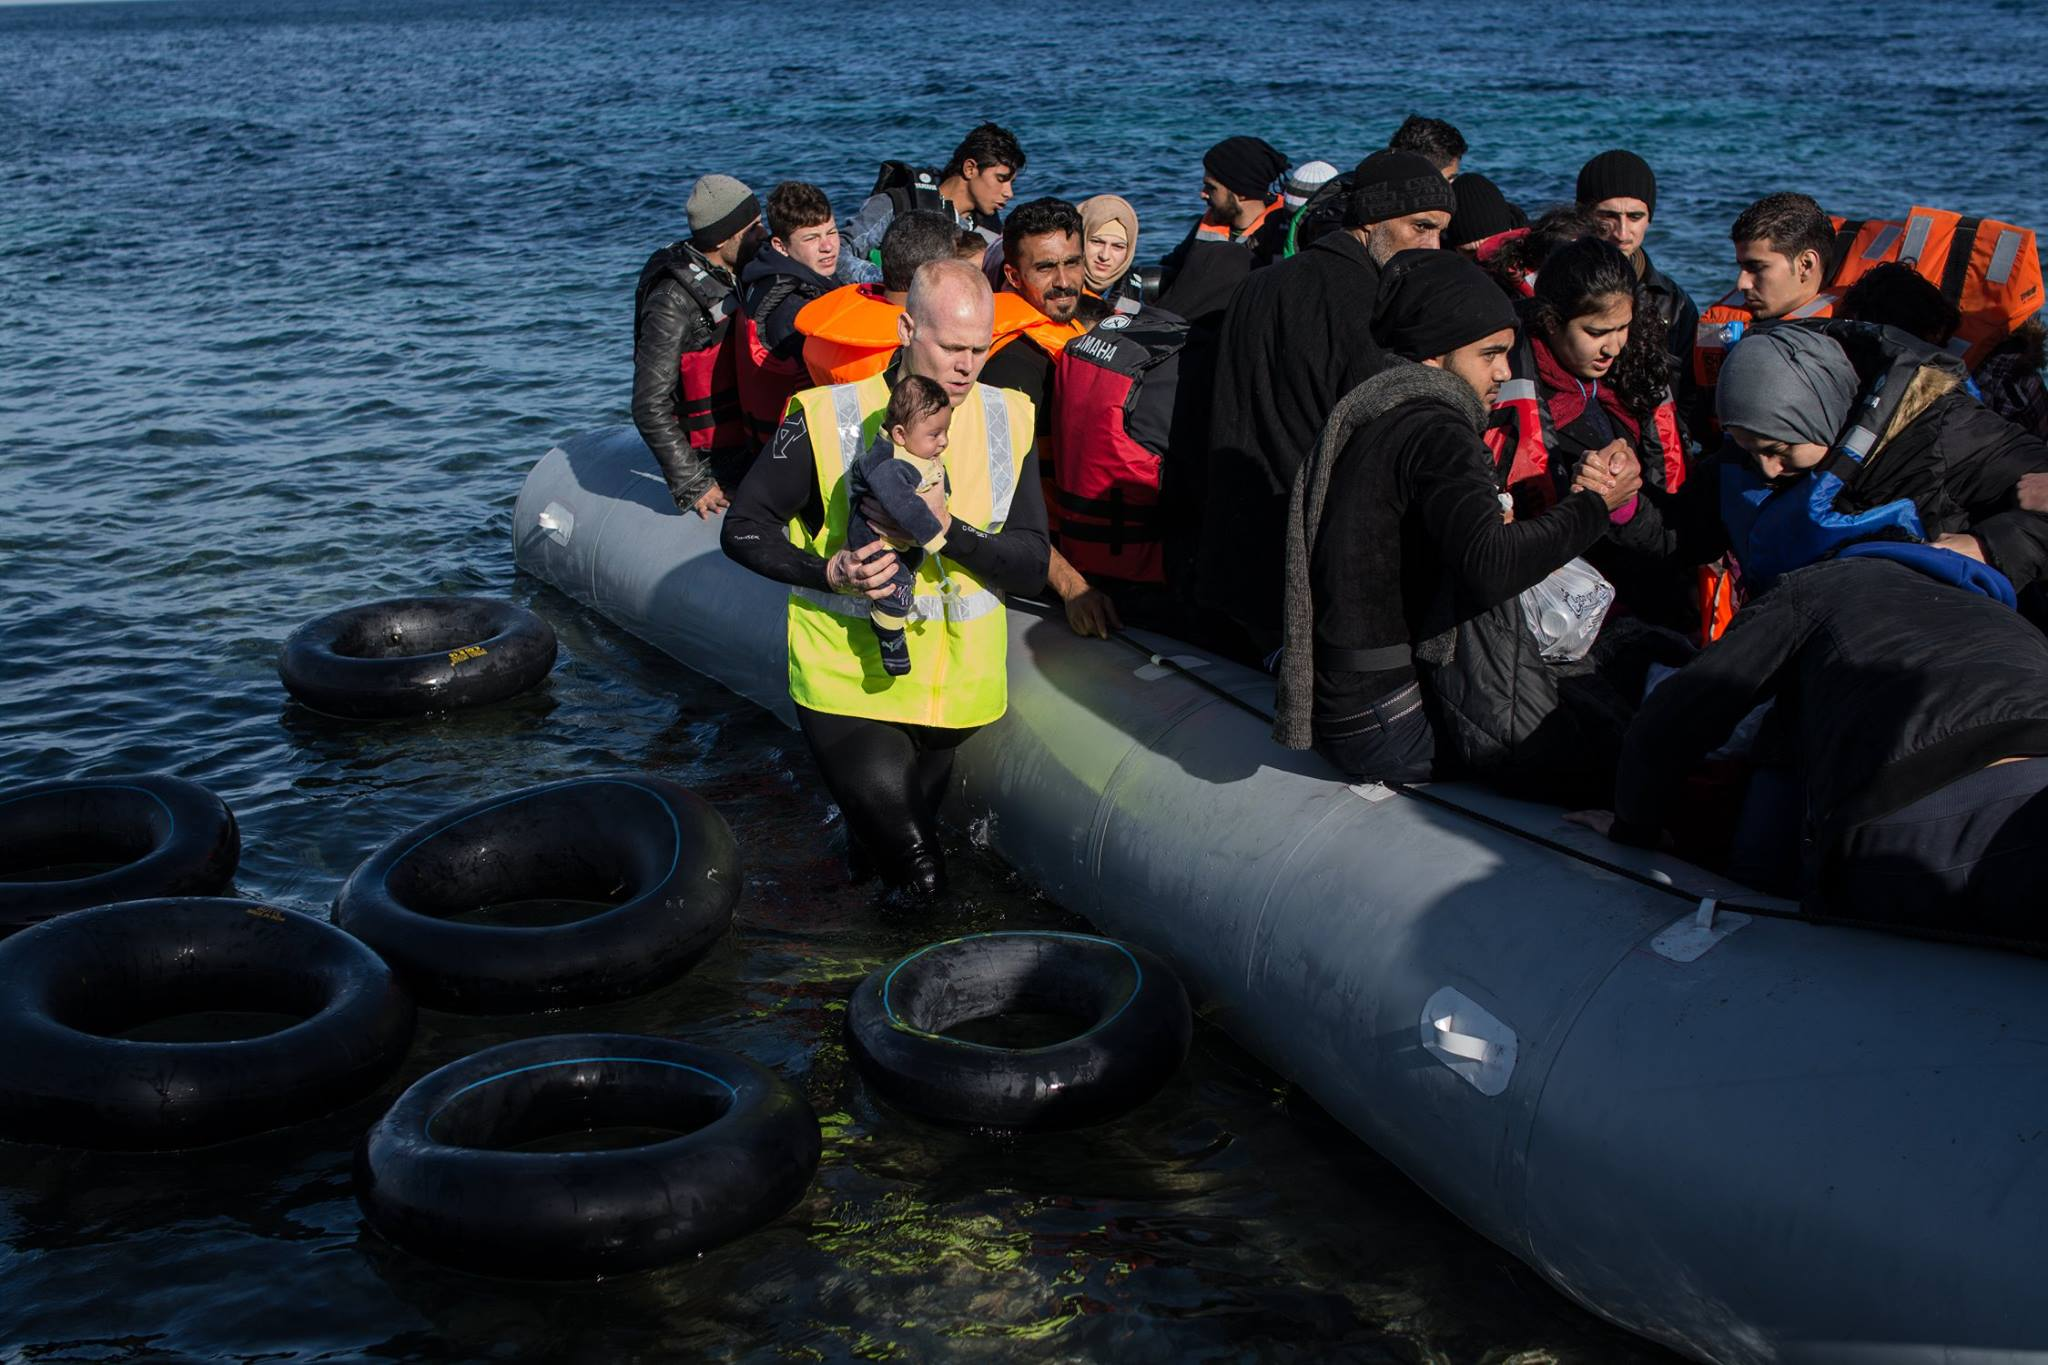 Keady helps refugees in the Aegean Sea